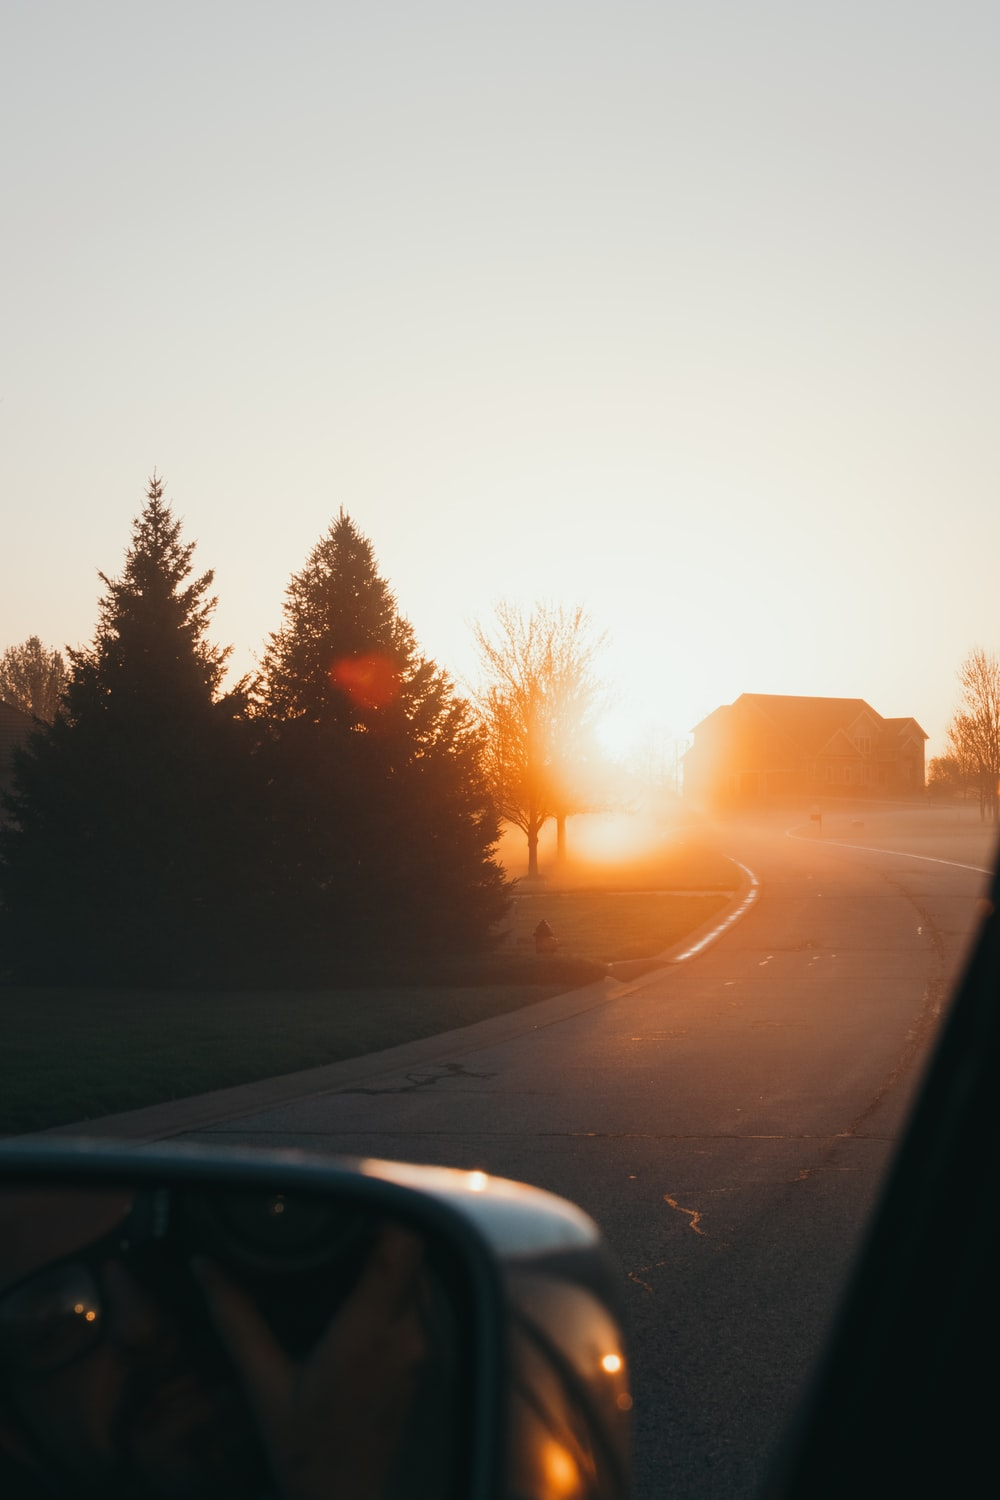 car on road during sunset